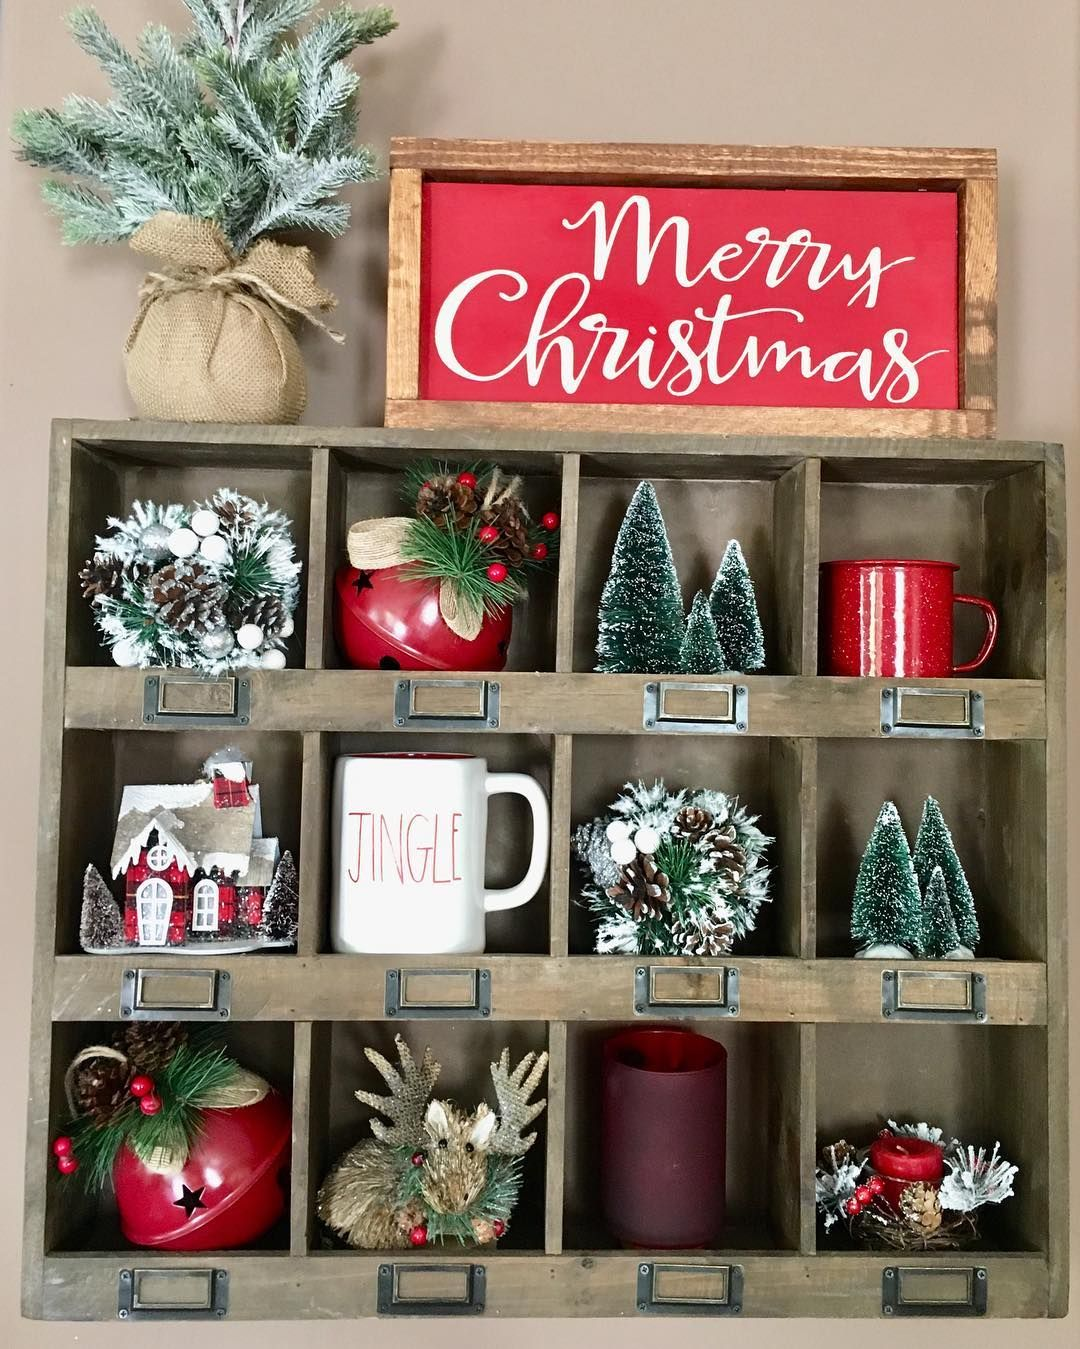 Hobby Lobby Shelf With Christmas Decor Hobby Lobby Christmas Hobby Lobby Shelves Christmas Decorations